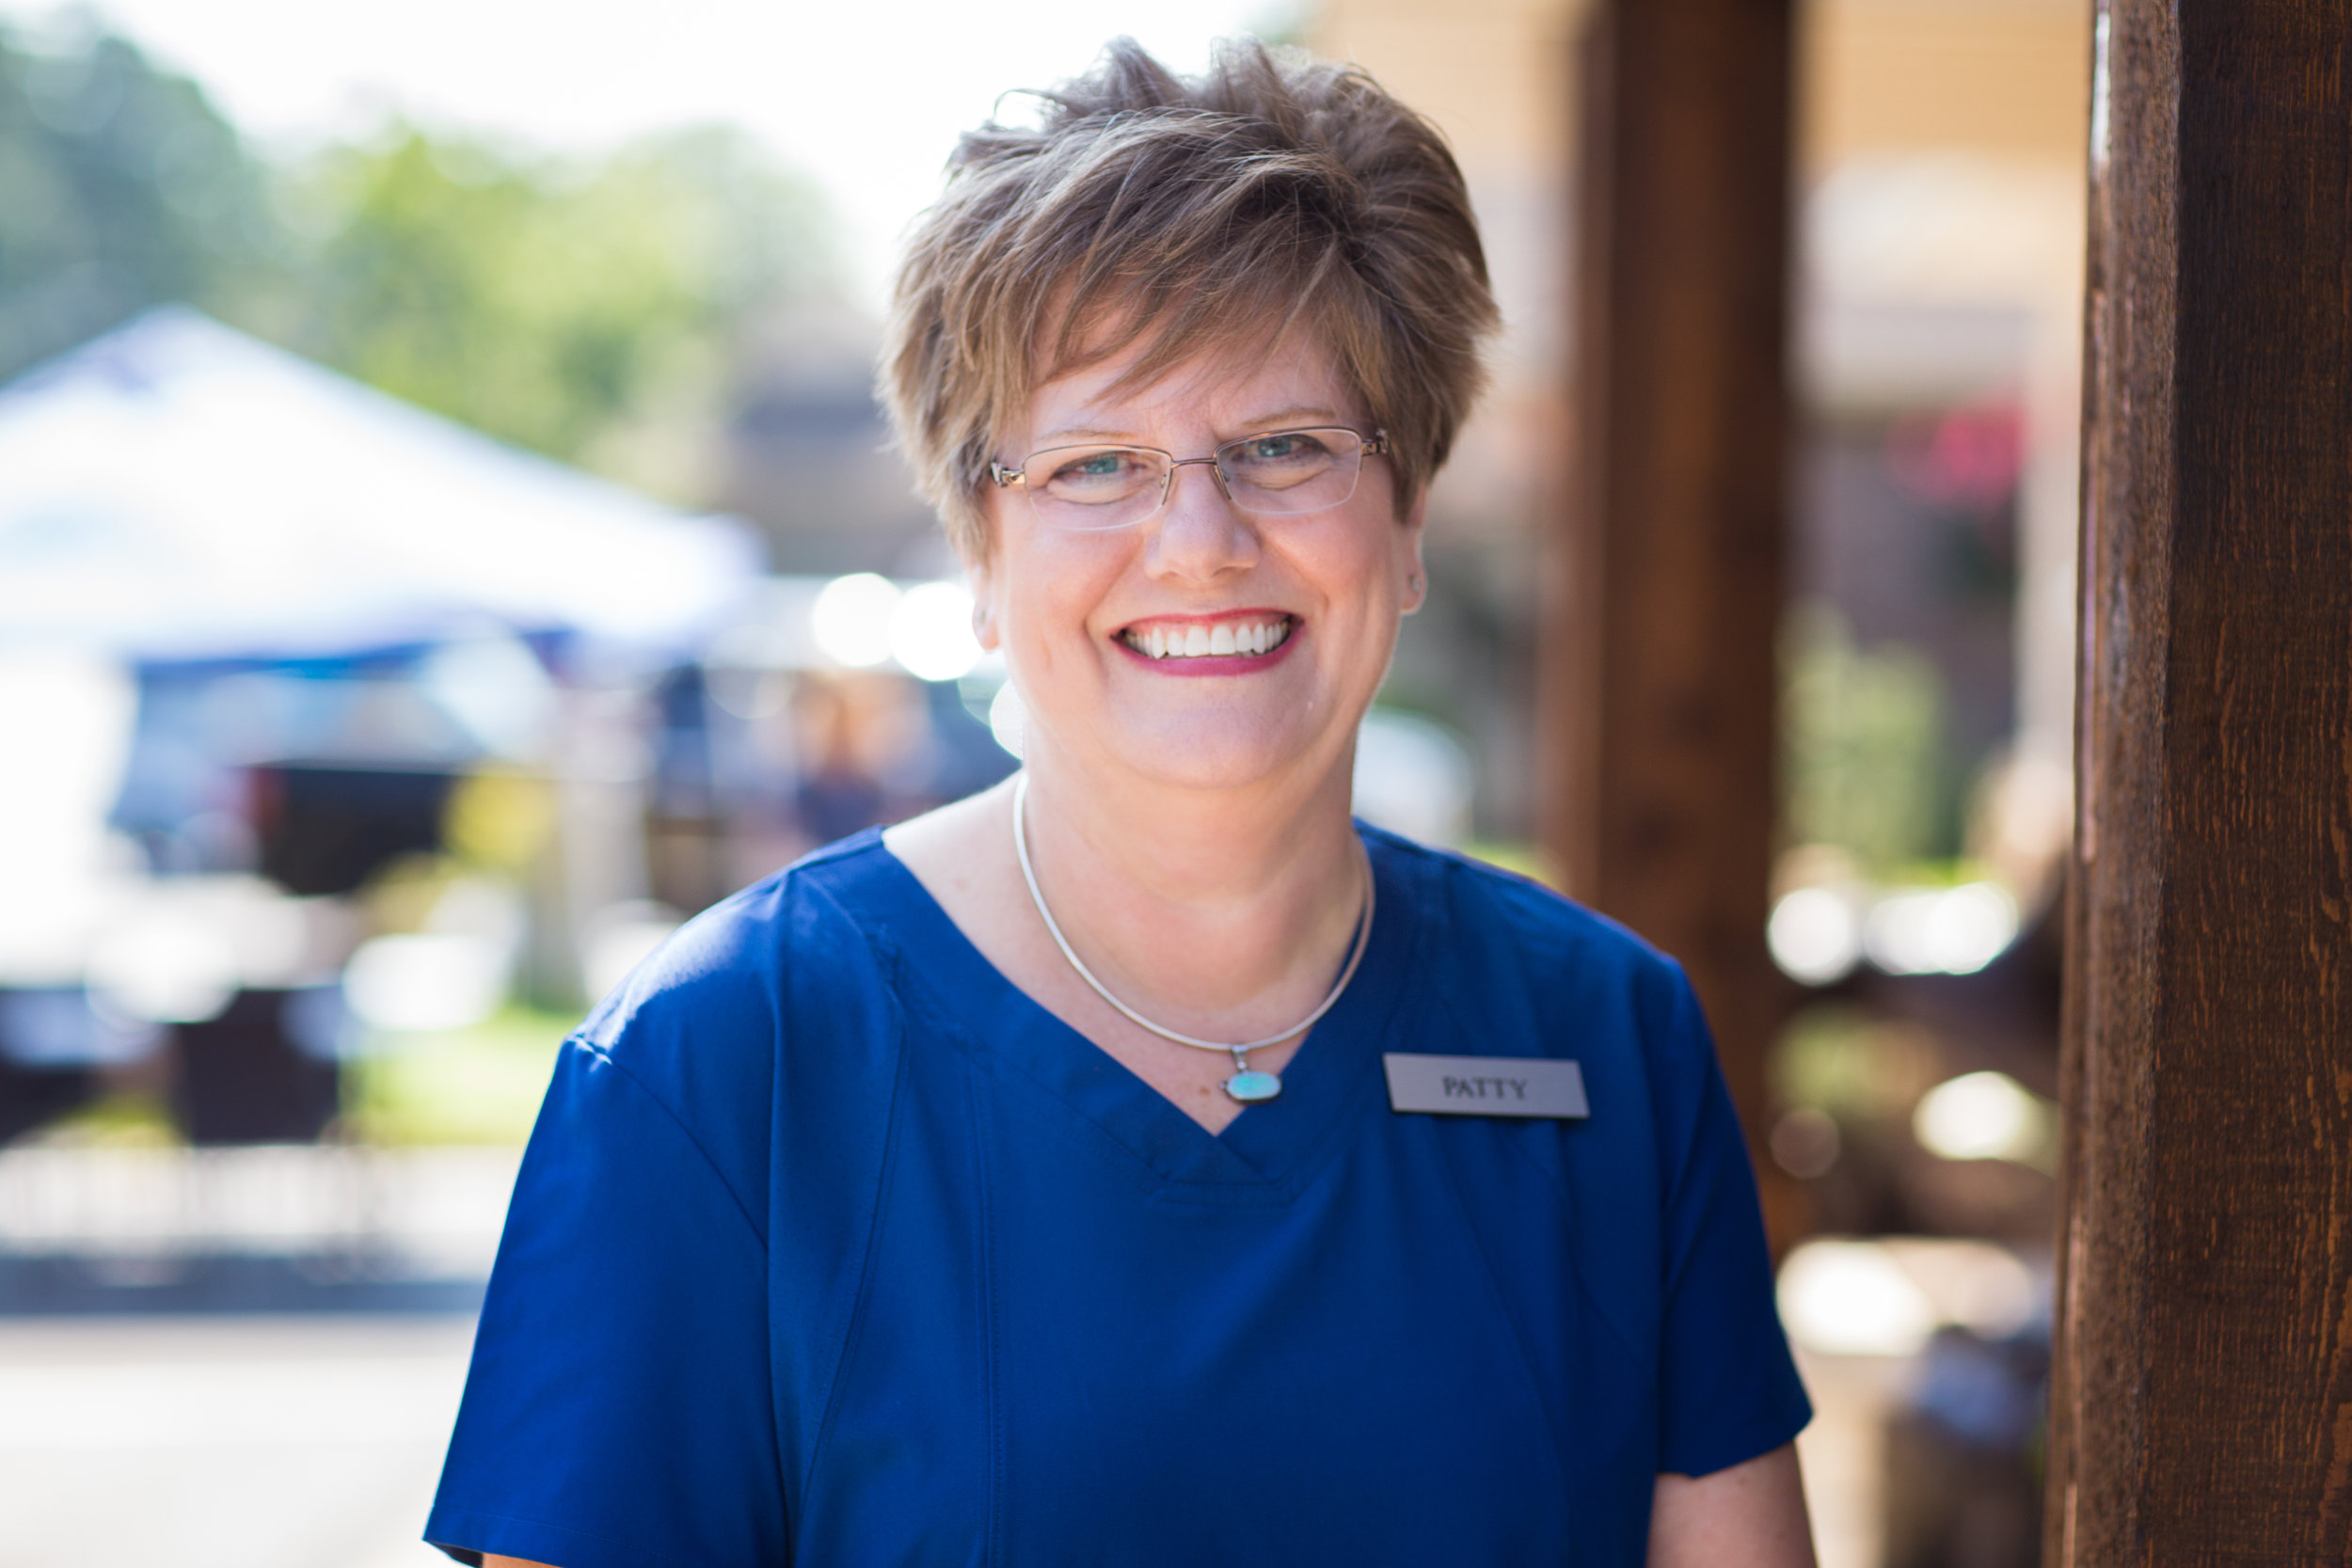 Patty Ninke, Dental Assistant   Patty's been in dentistry since 1981 and joined VDG in 2011. She and her husband, Duane live here in the village where they enjoy many activities the village has to offer. But her favorite is pickleball!